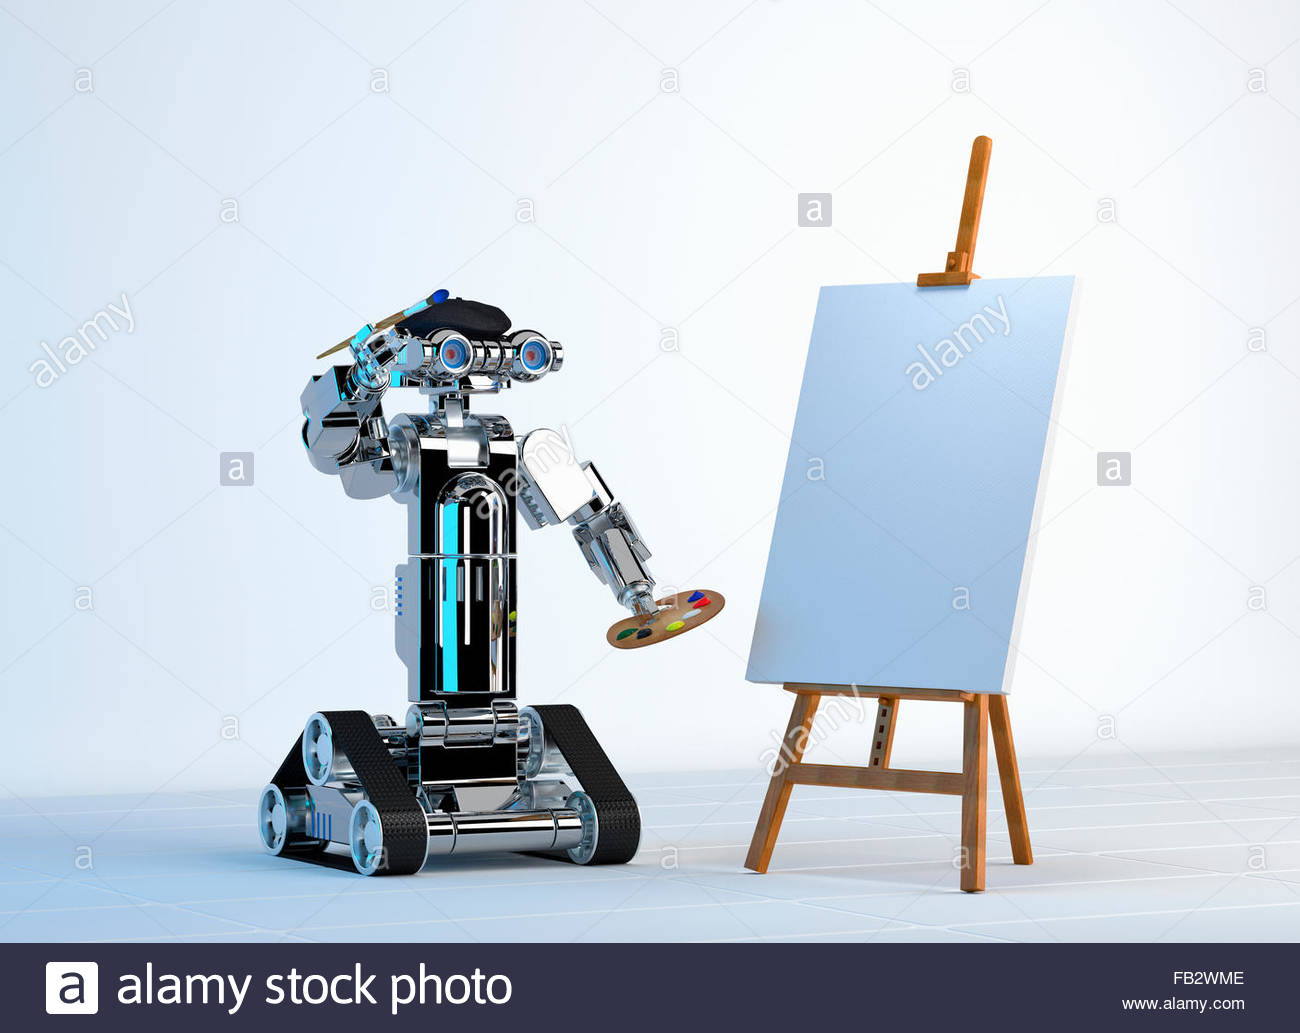 Robot artist painting with blank canvas on easel - Stock Image